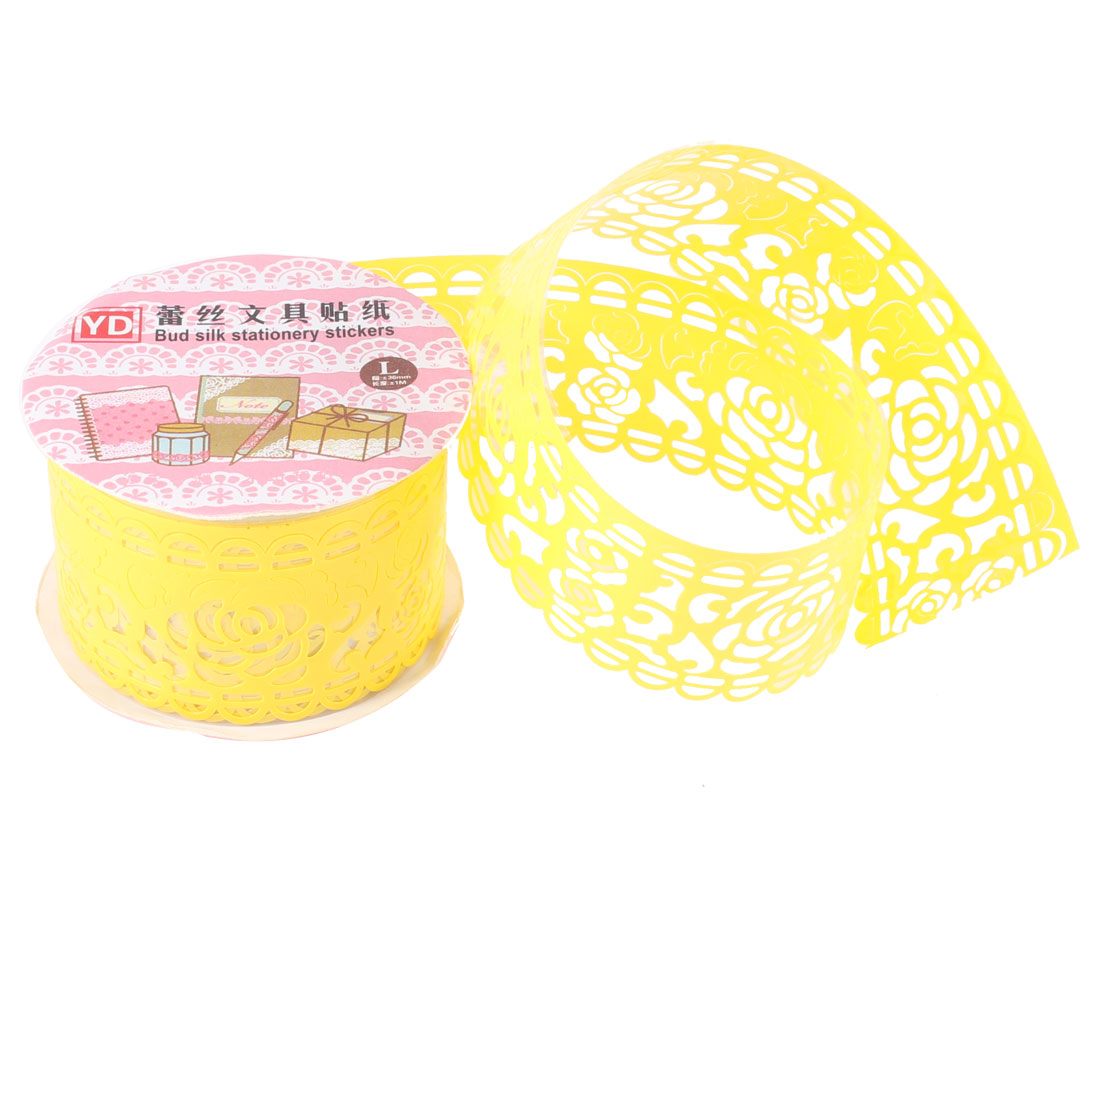 Hollow Lace Diary Stationery Plastic Decorative Sticker Adhesive Tape Yellow